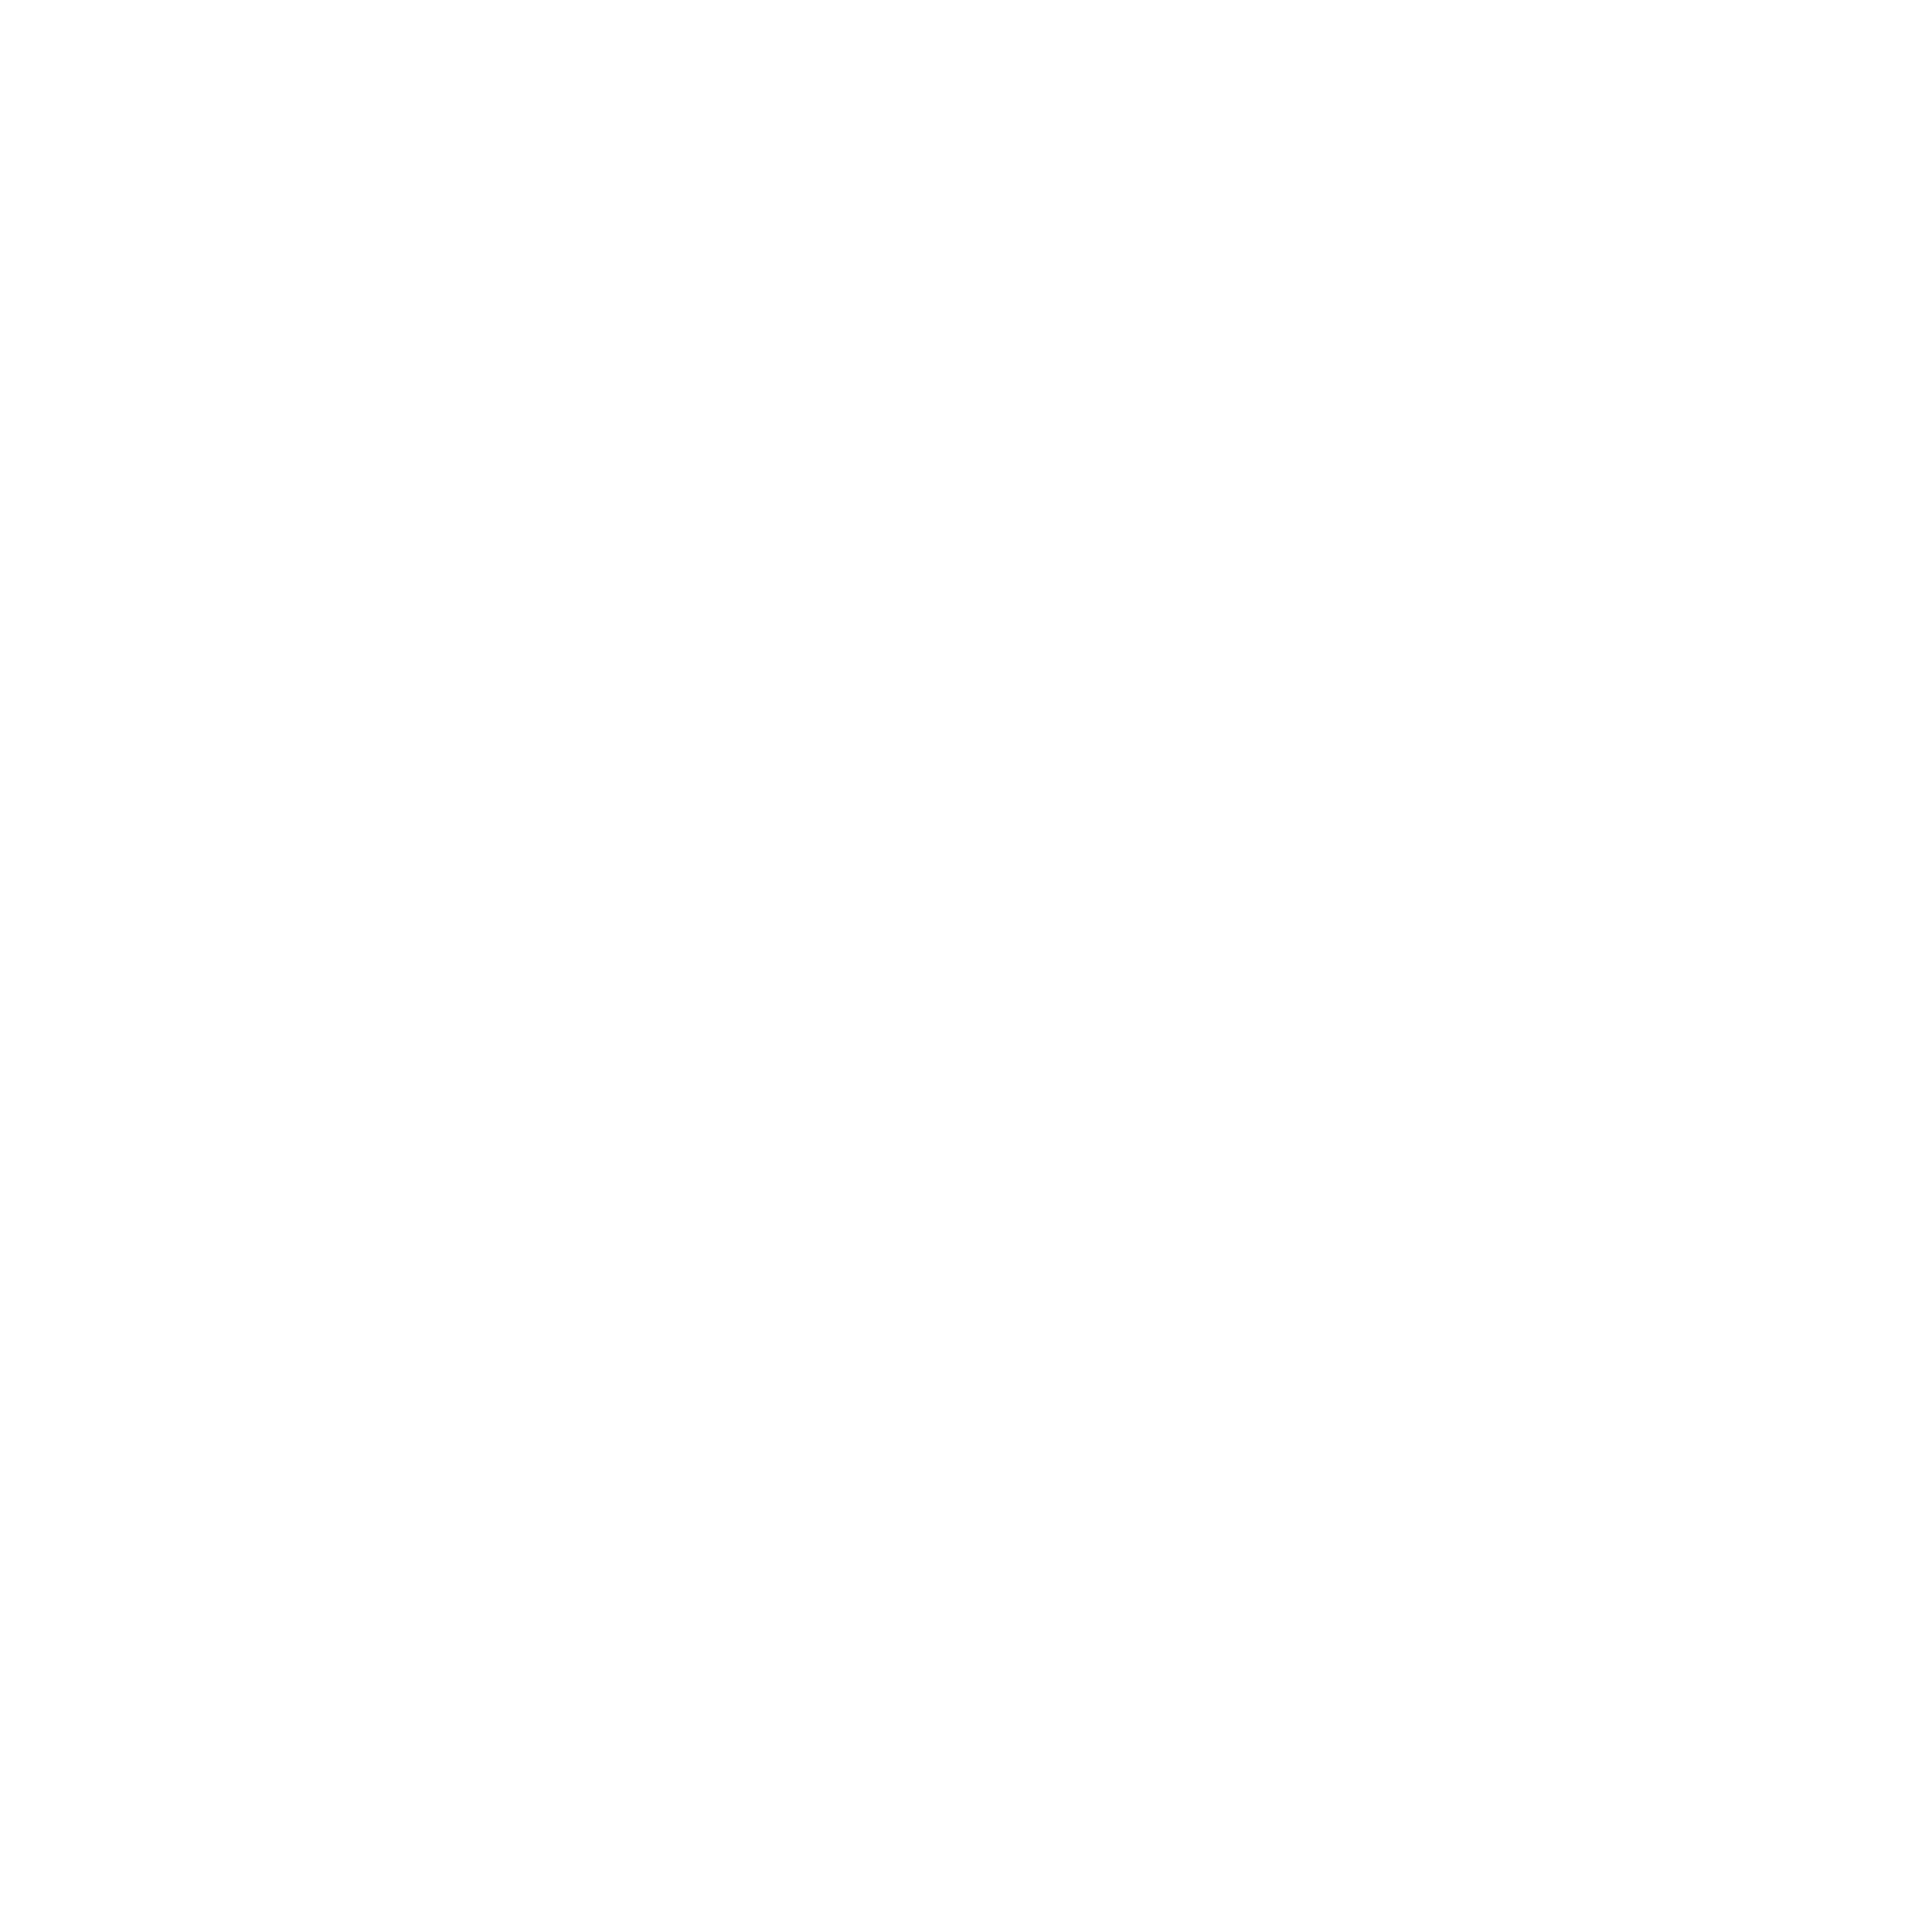 Cuervo Media, Inc.